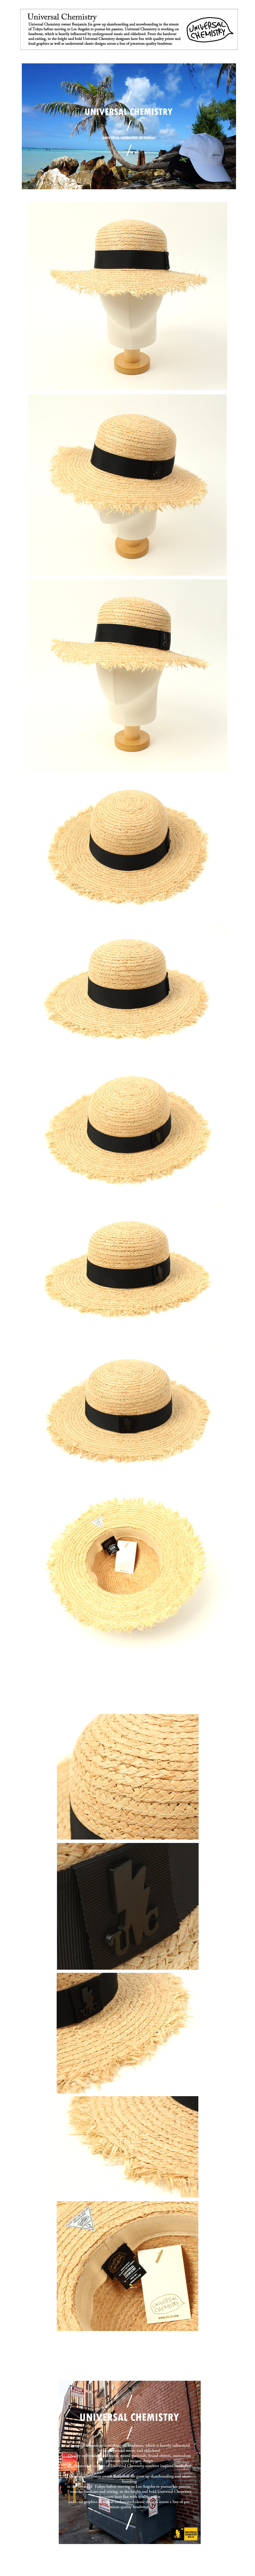 BKMT Round Natural Raffia Hat 여름페도라